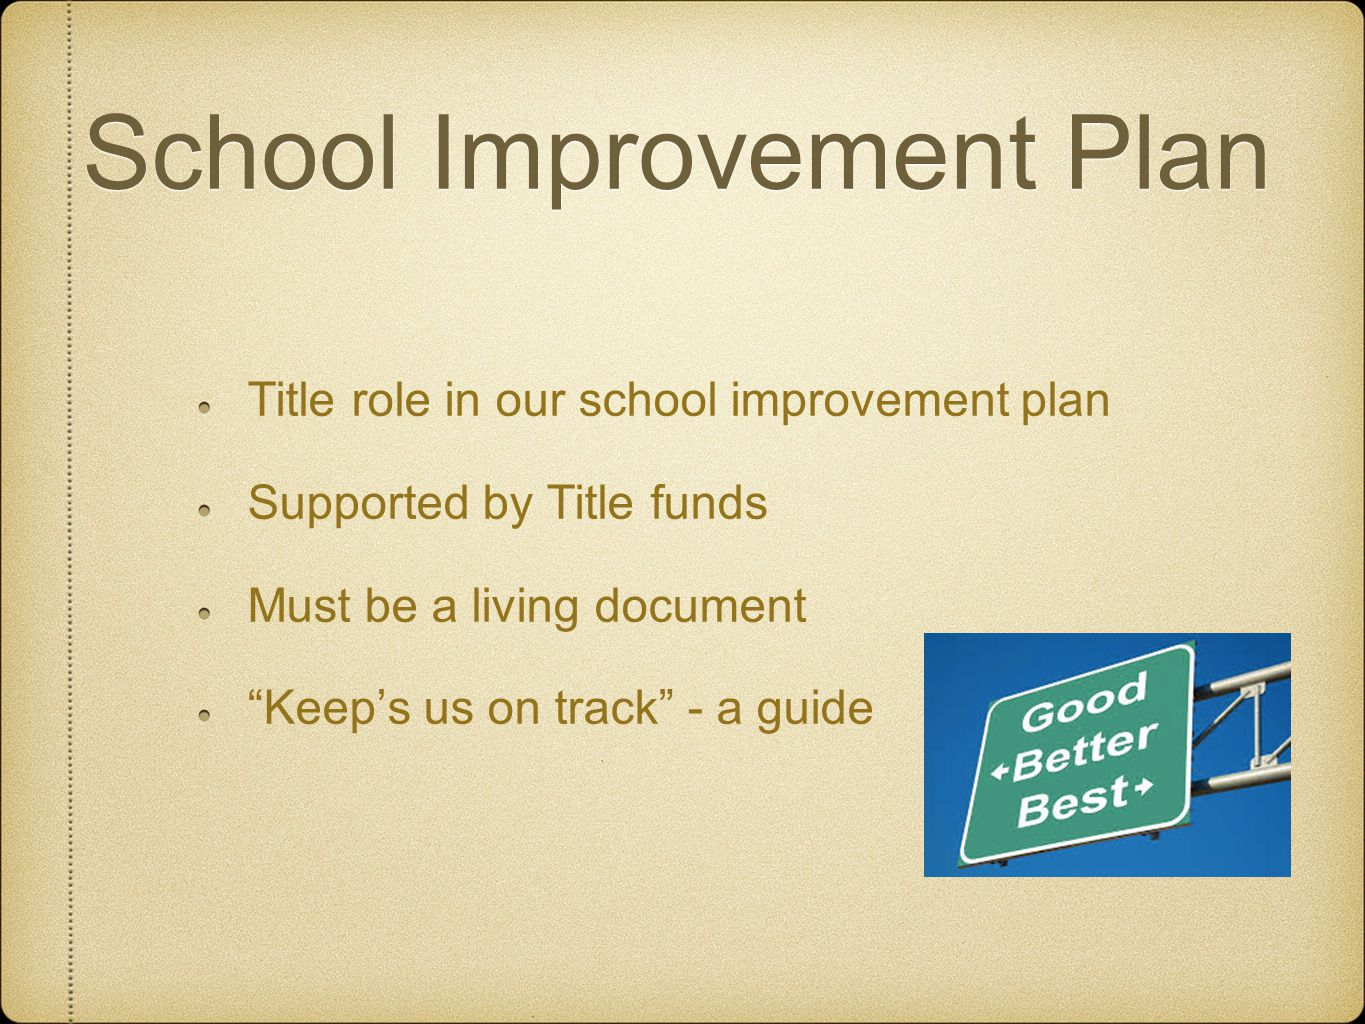 School Improvement Plan Title role in our school improvement plan Supported by Title funds Must be a living document Keep's us on track - a guide